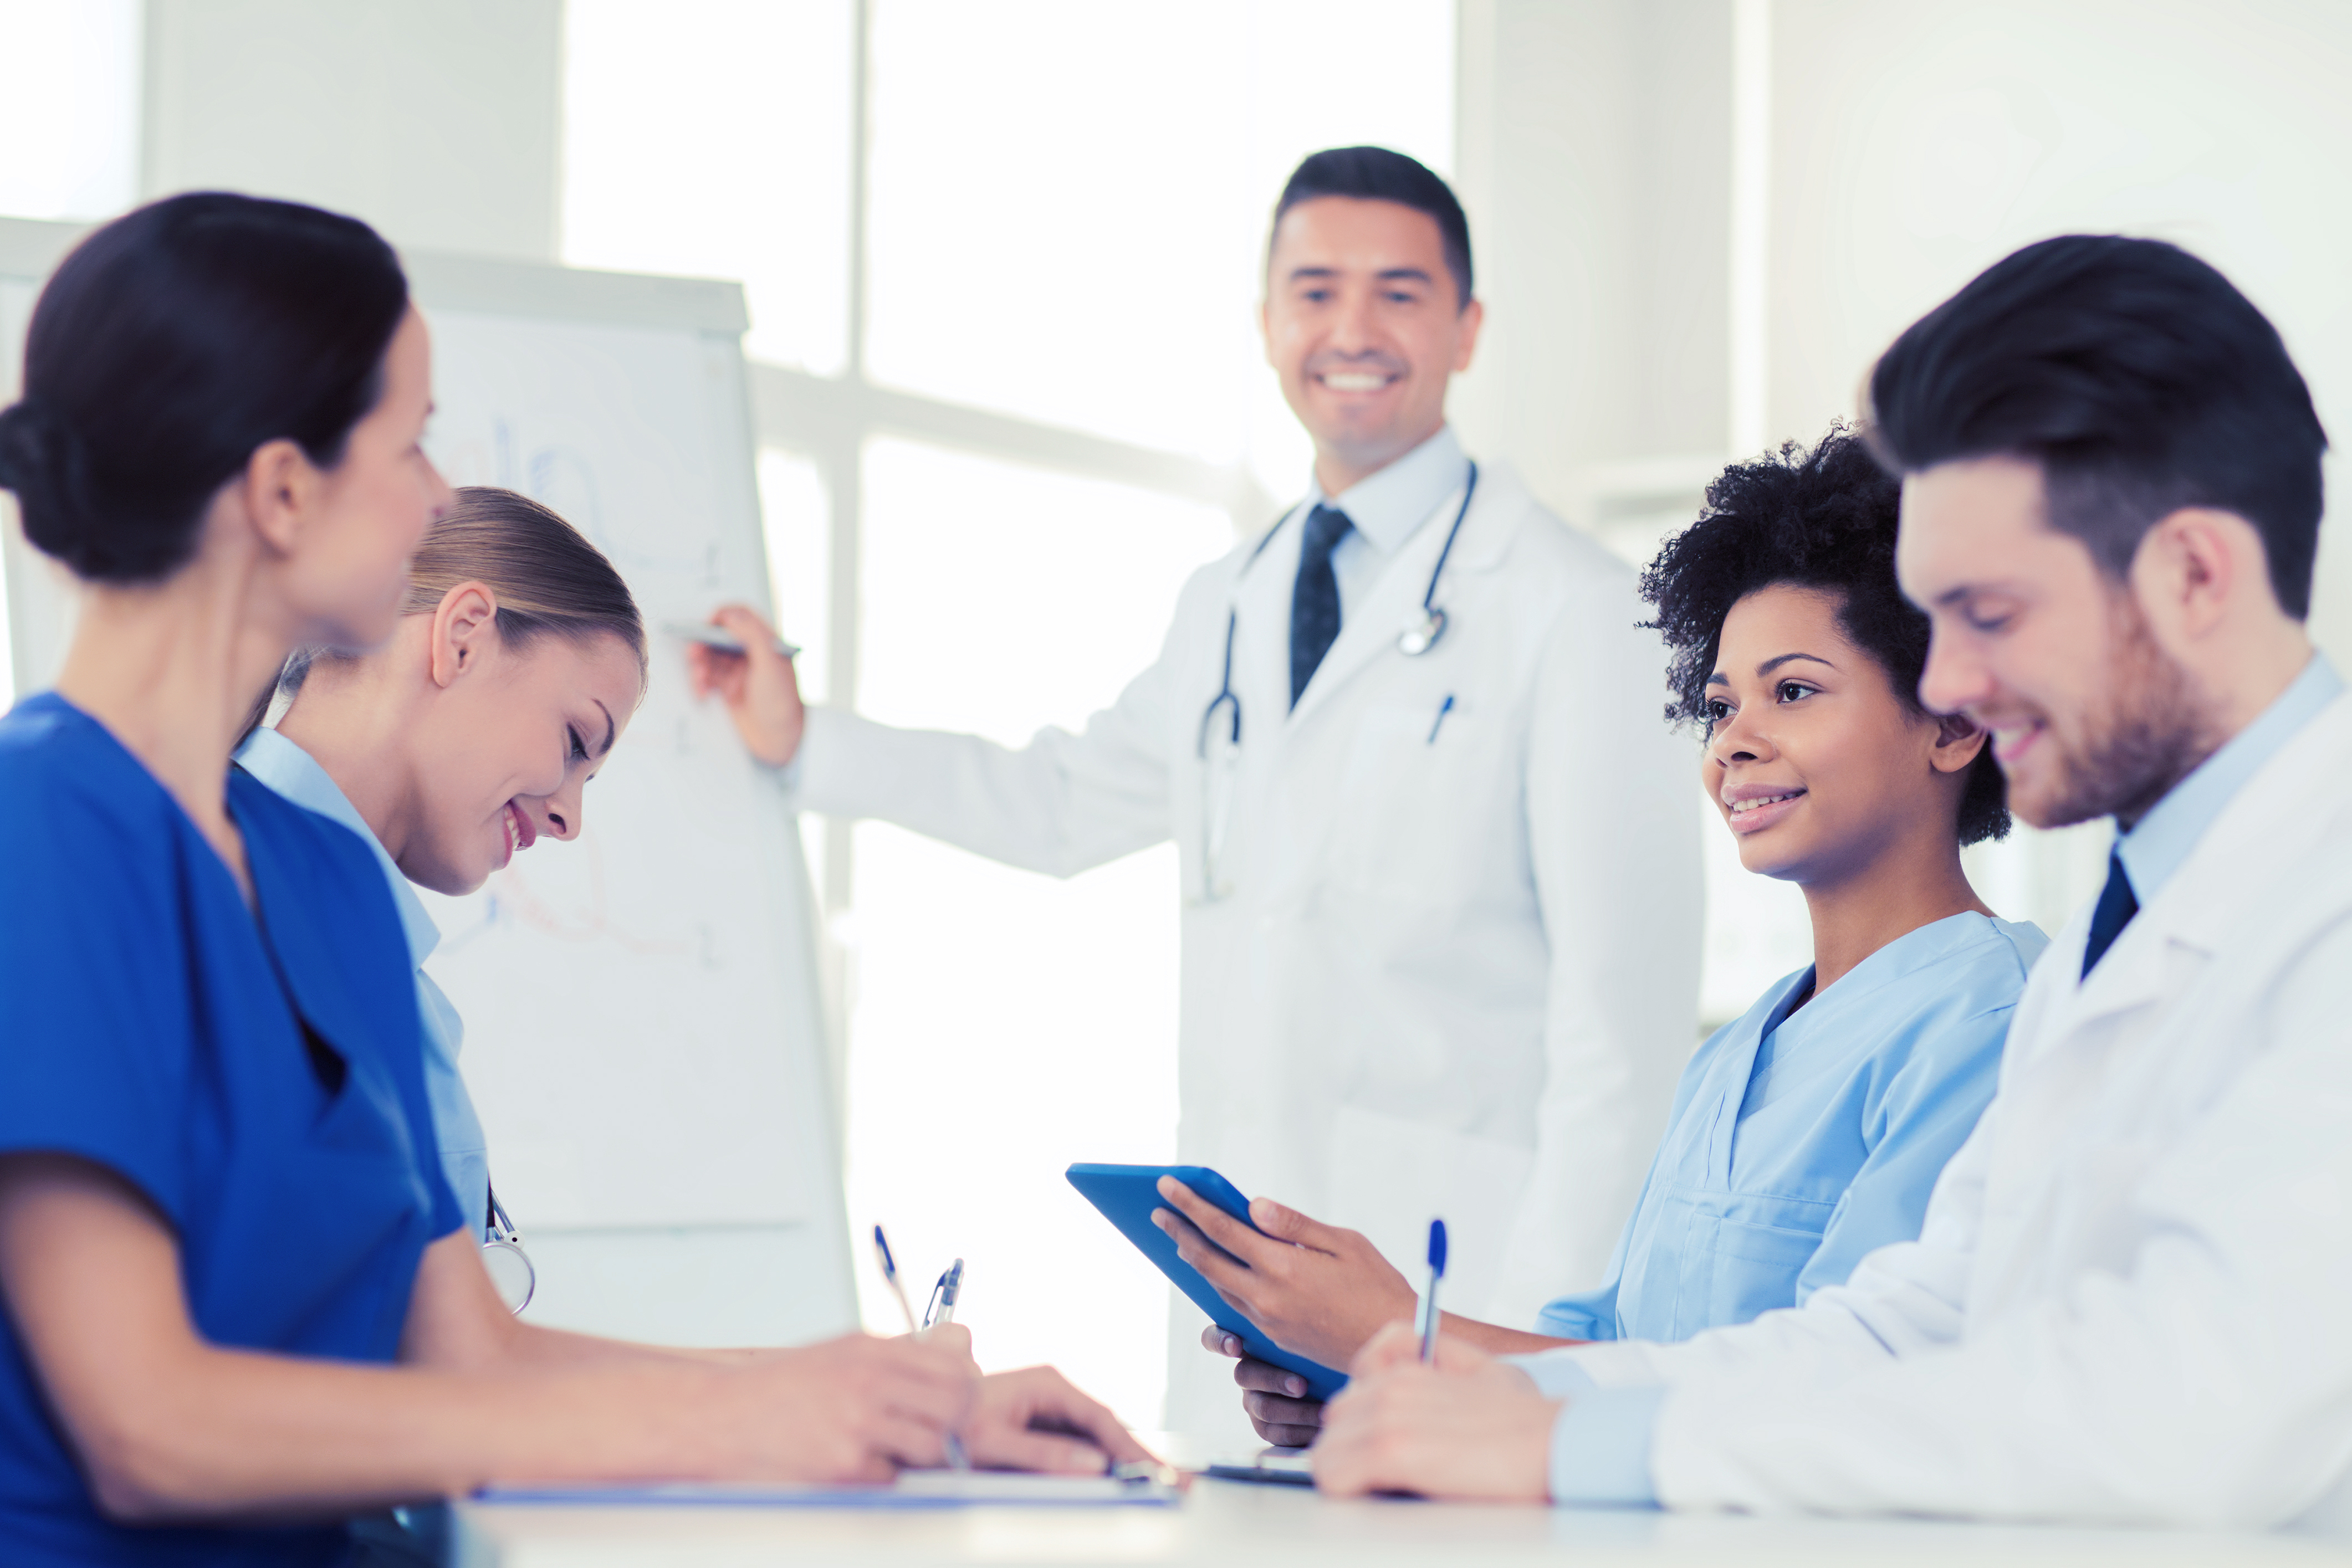 empower your staff through health and social care training